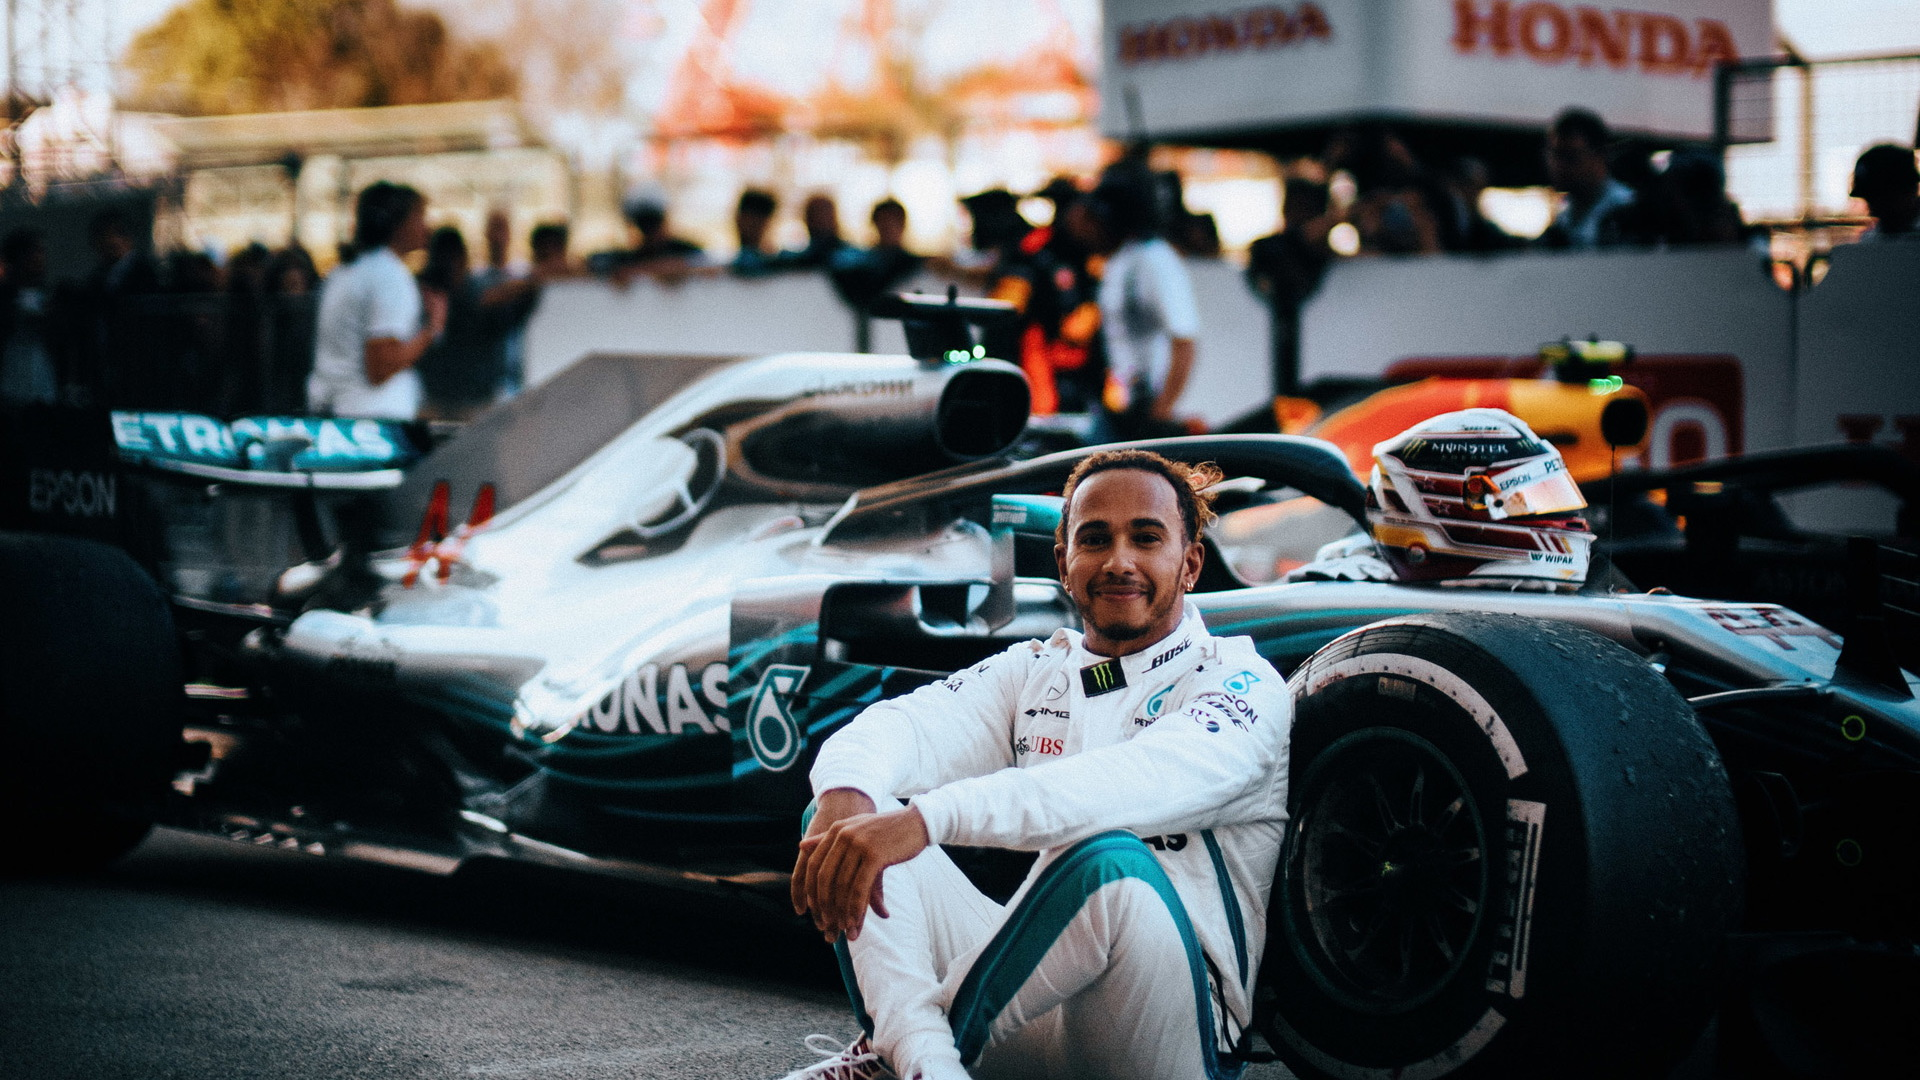 Mercedes-AMG's Lewis Hamilton at the 2018 Formula 1 Japanese Grand Prix